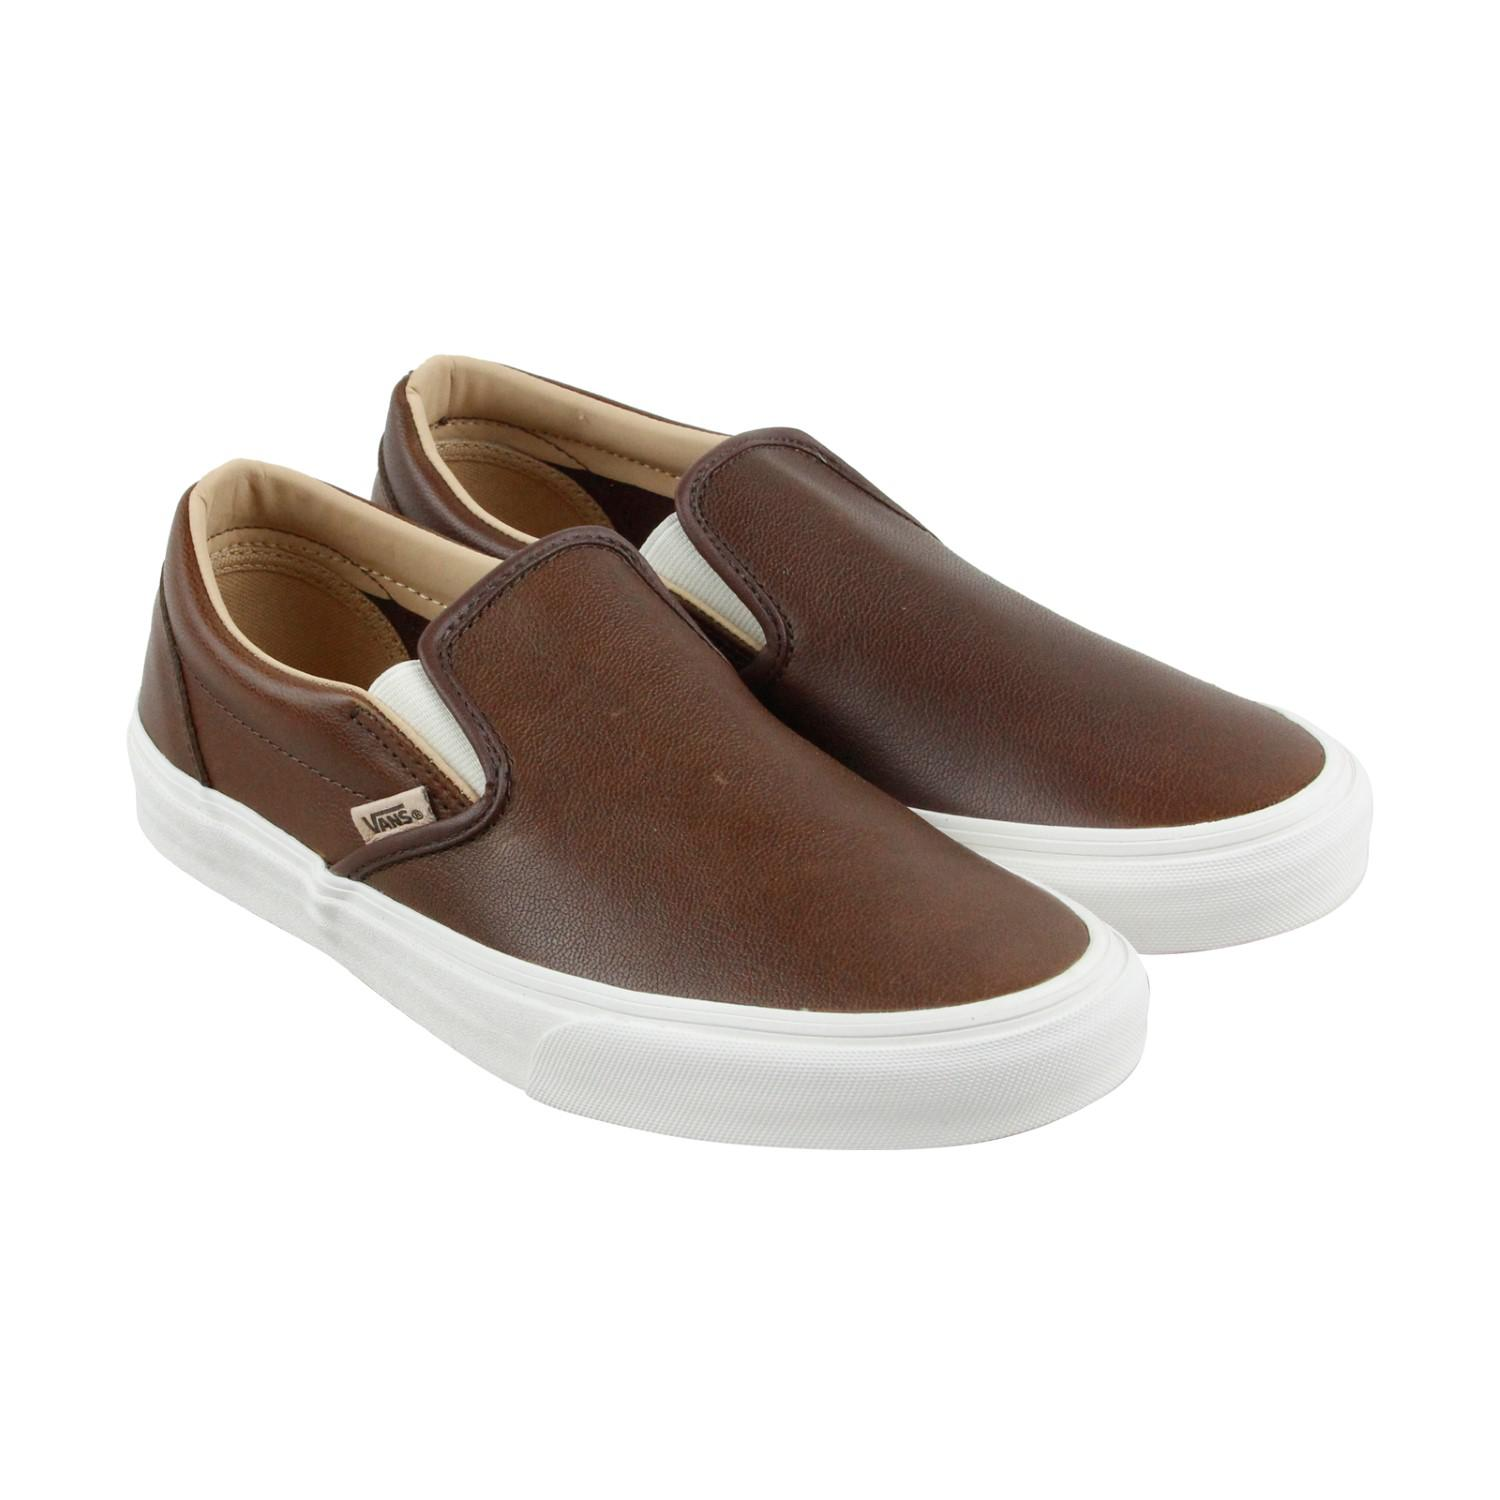 Lyst - Vans Unisex Classic Slip-on Shoes Lux Leather Shaved ... d51f4cf53